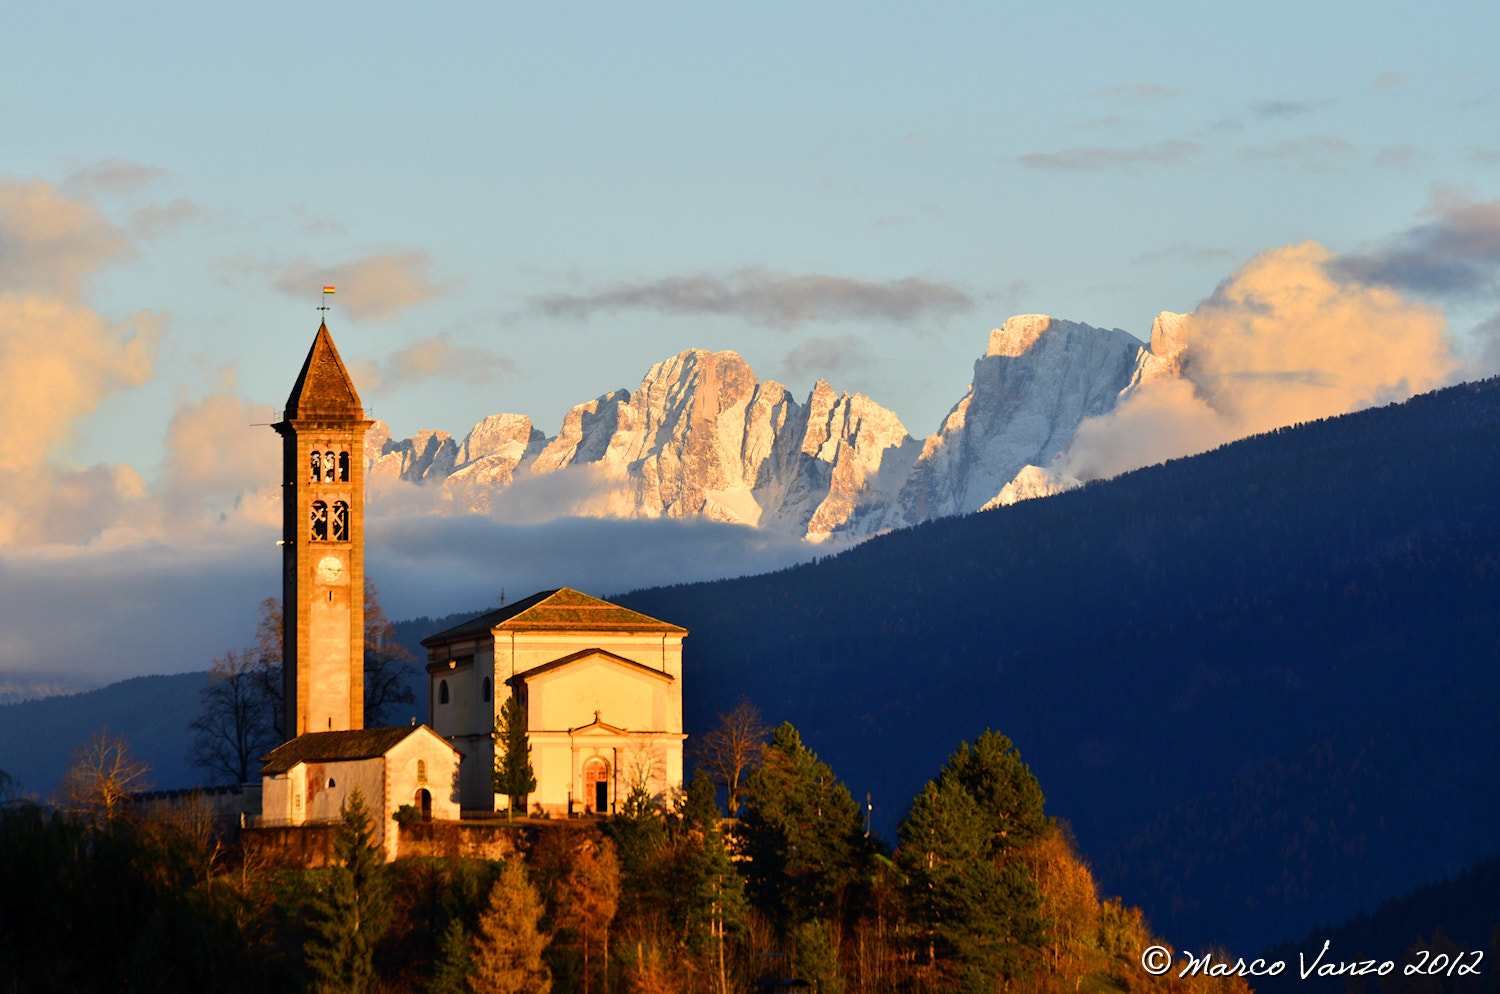 Photograph Castello di Fiemme by Marco Vanzo on 500px